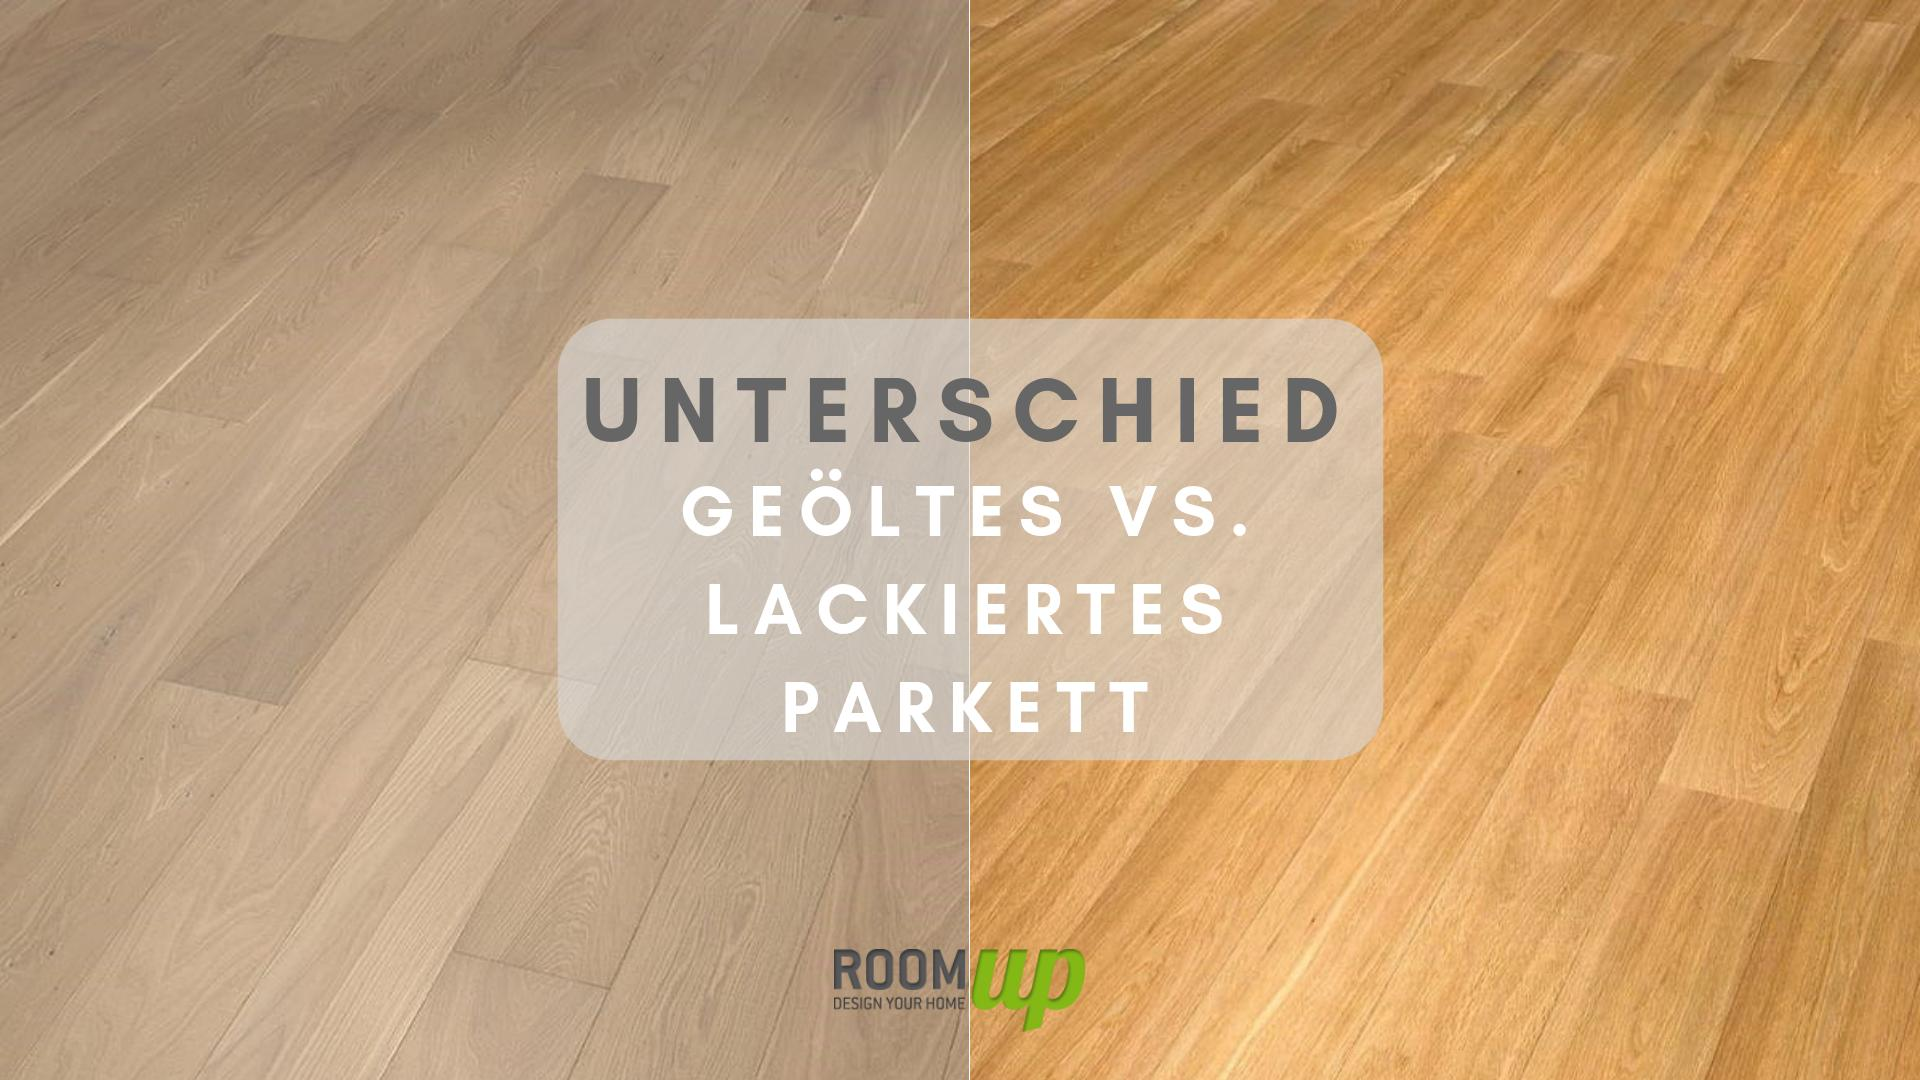 Favorit Unterschied geöltes und lackiertes Parkett - Room Up Bodenmagazin CS31